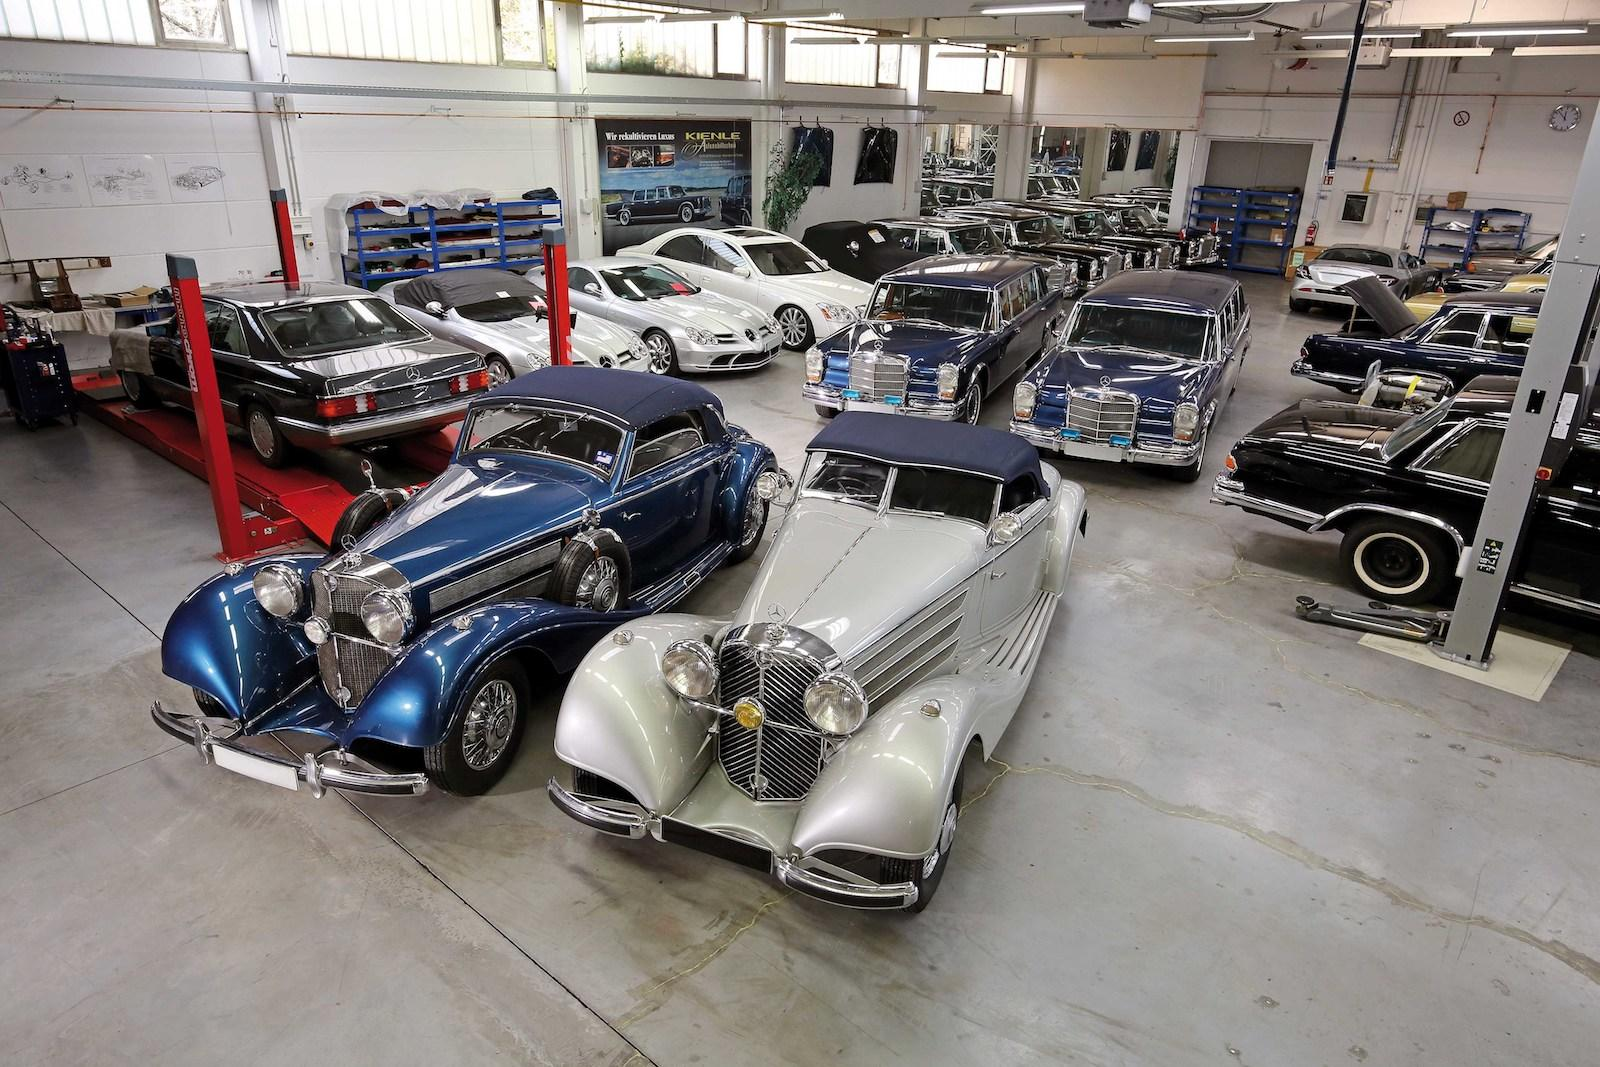 Mercedes specialist receives four cars from Asian royal family